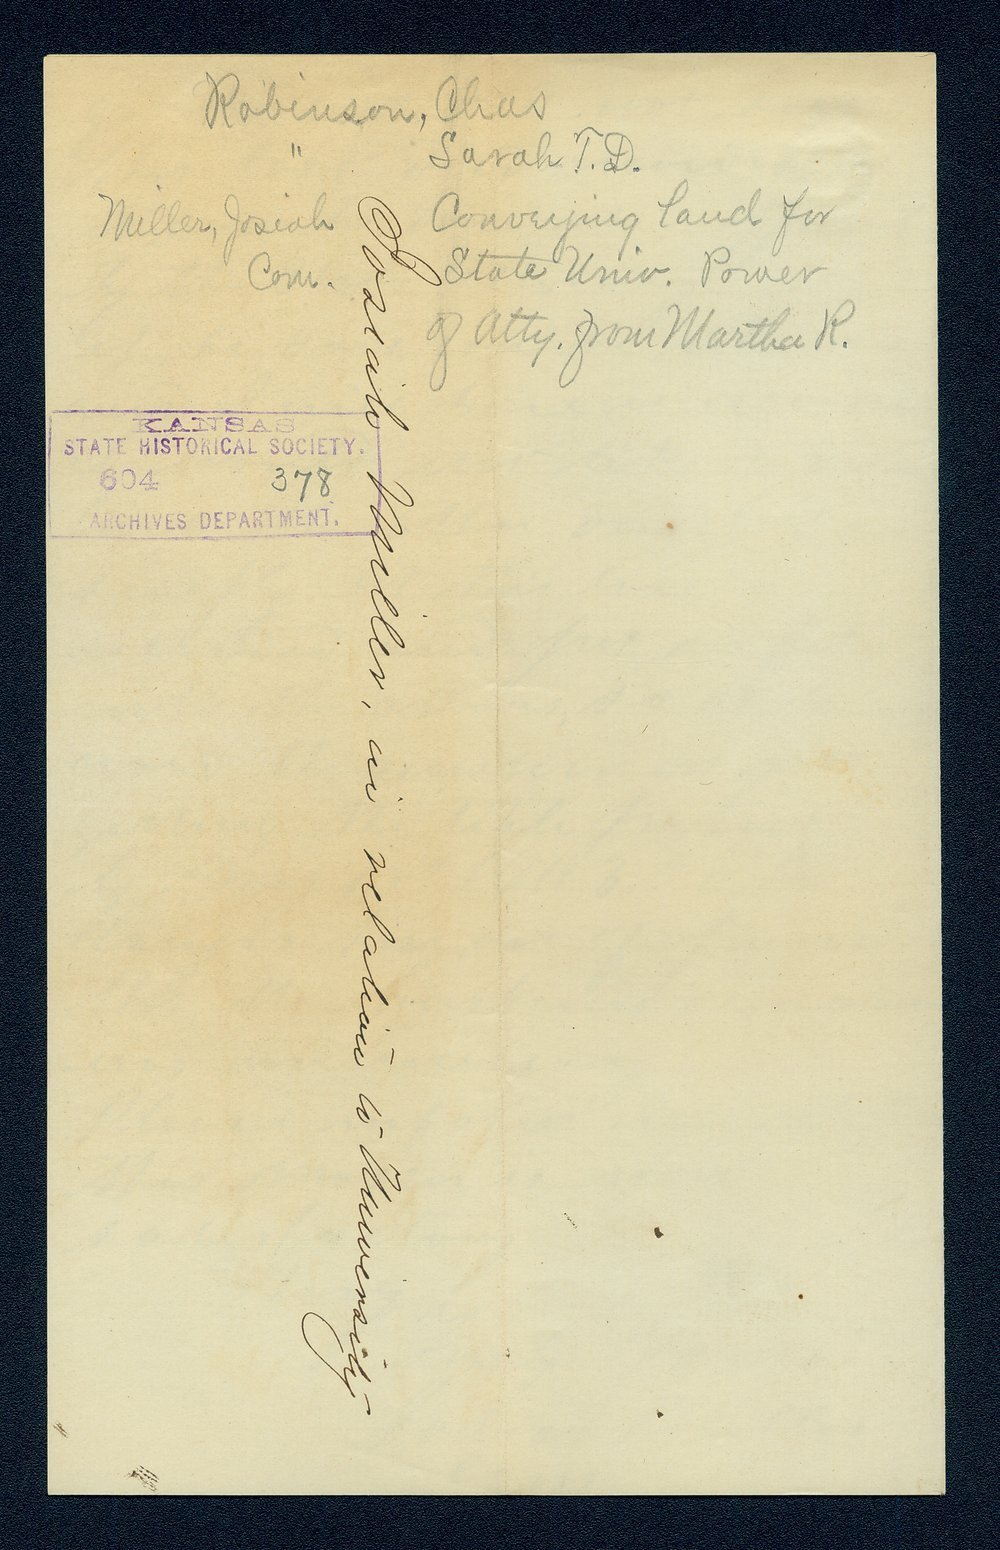 Governor Thomas Carney college and university lands, 1863, correspondence - 9